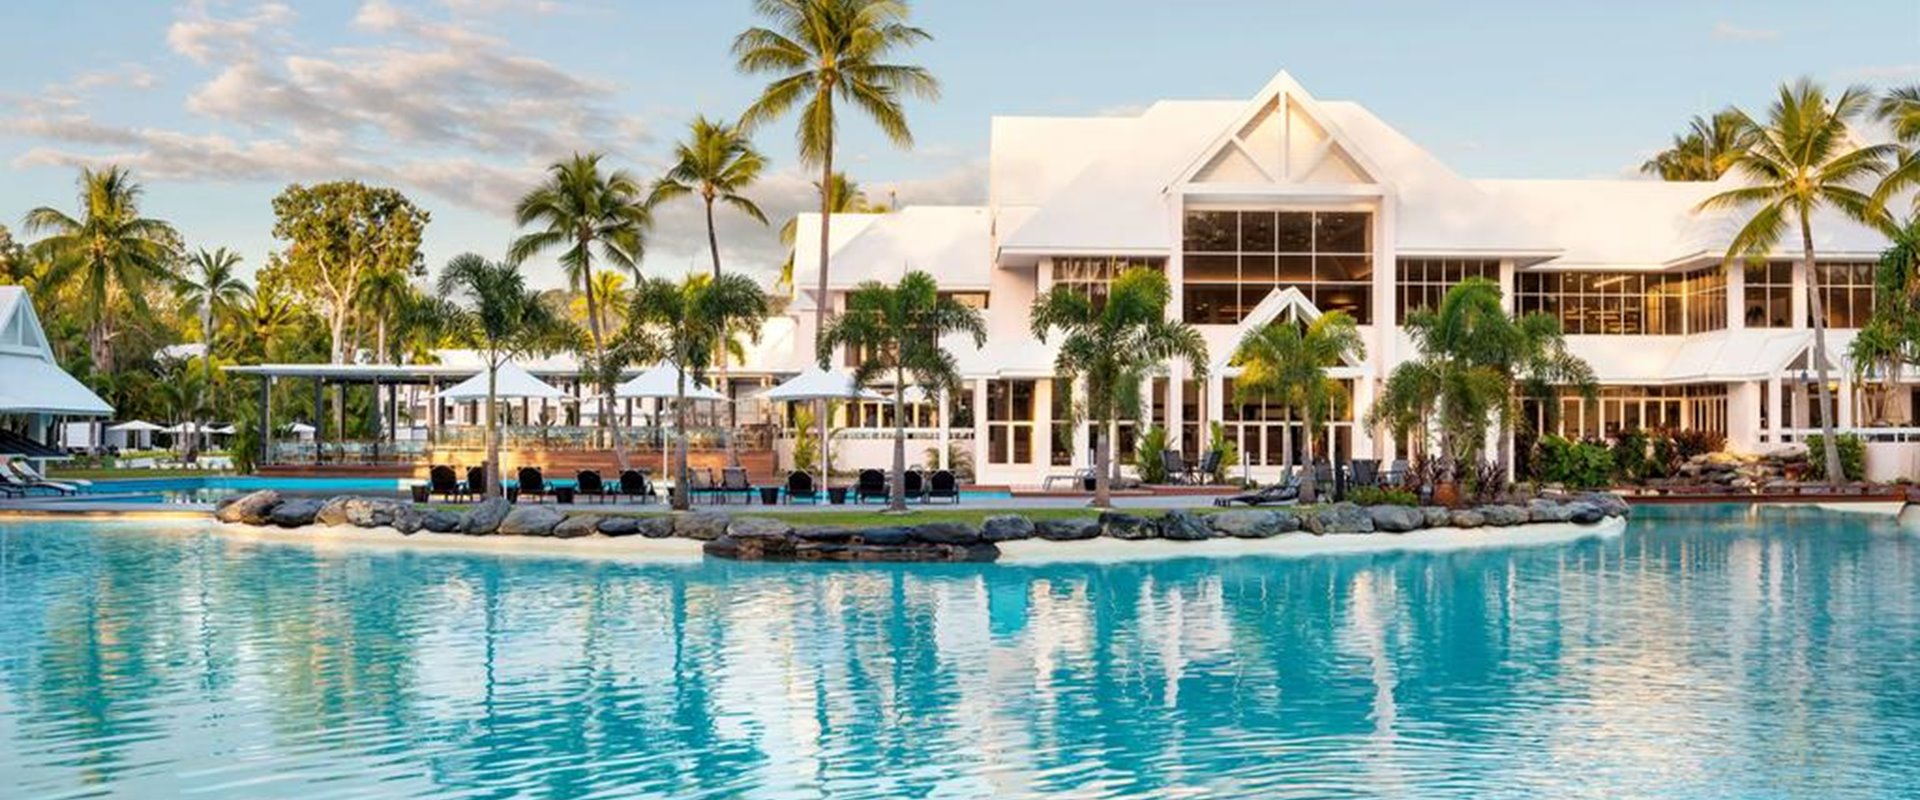 Sheraton Grand Mirage Port Douglas | Conference Venues Port Douglas | Conference Venues Queensland